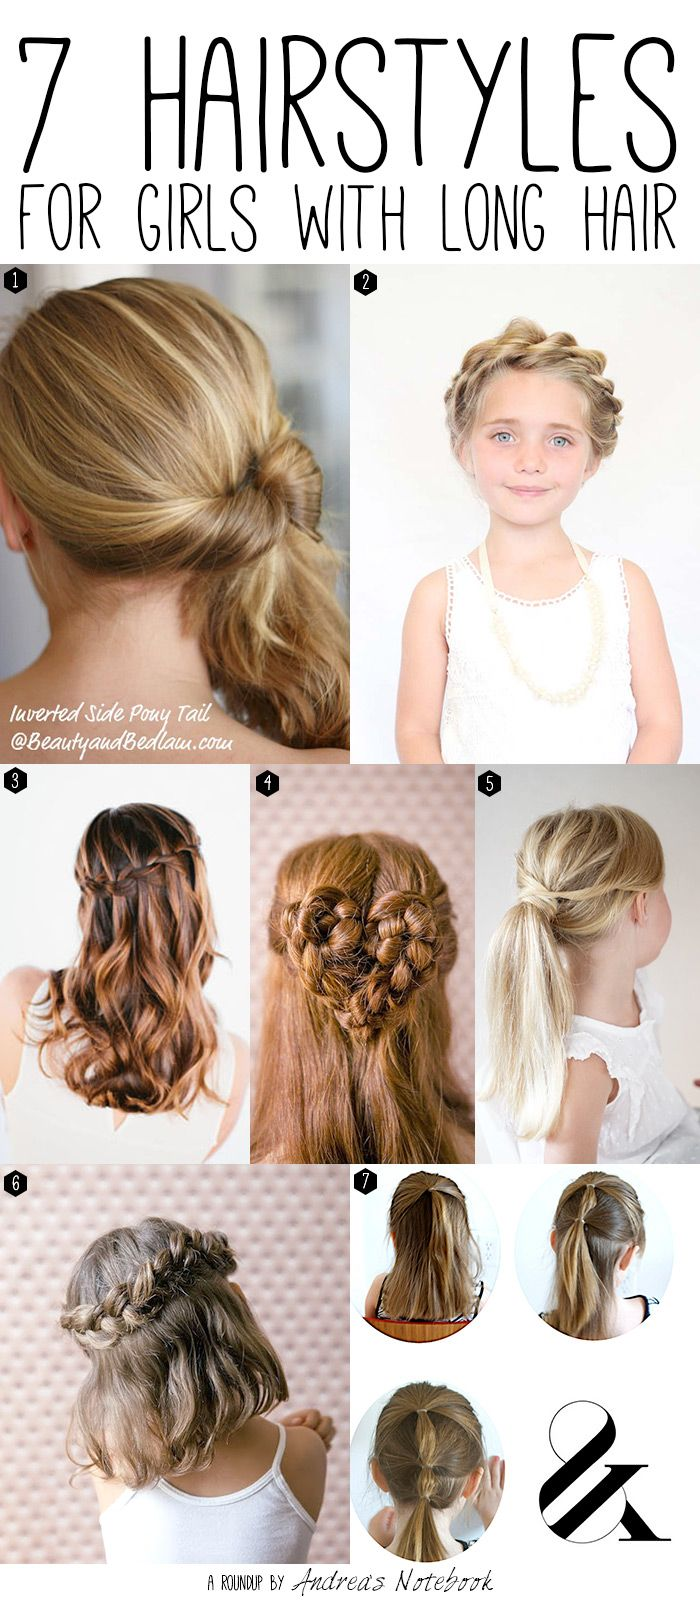 7 hairstyles for girls with long hair